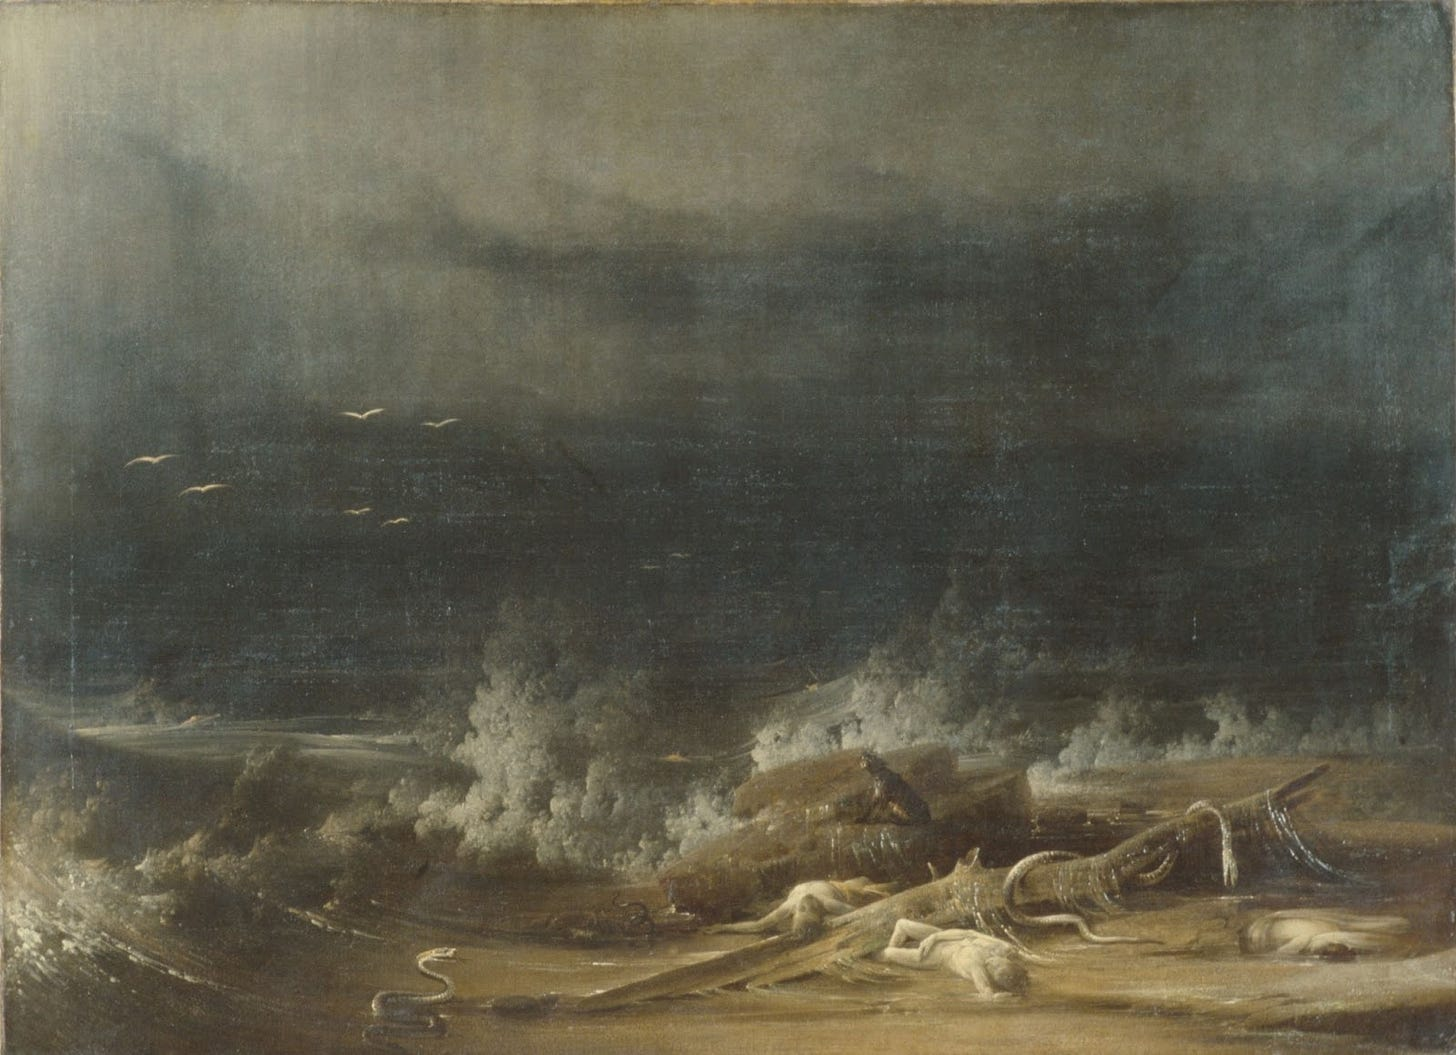 Picture of a storm hitting the shore